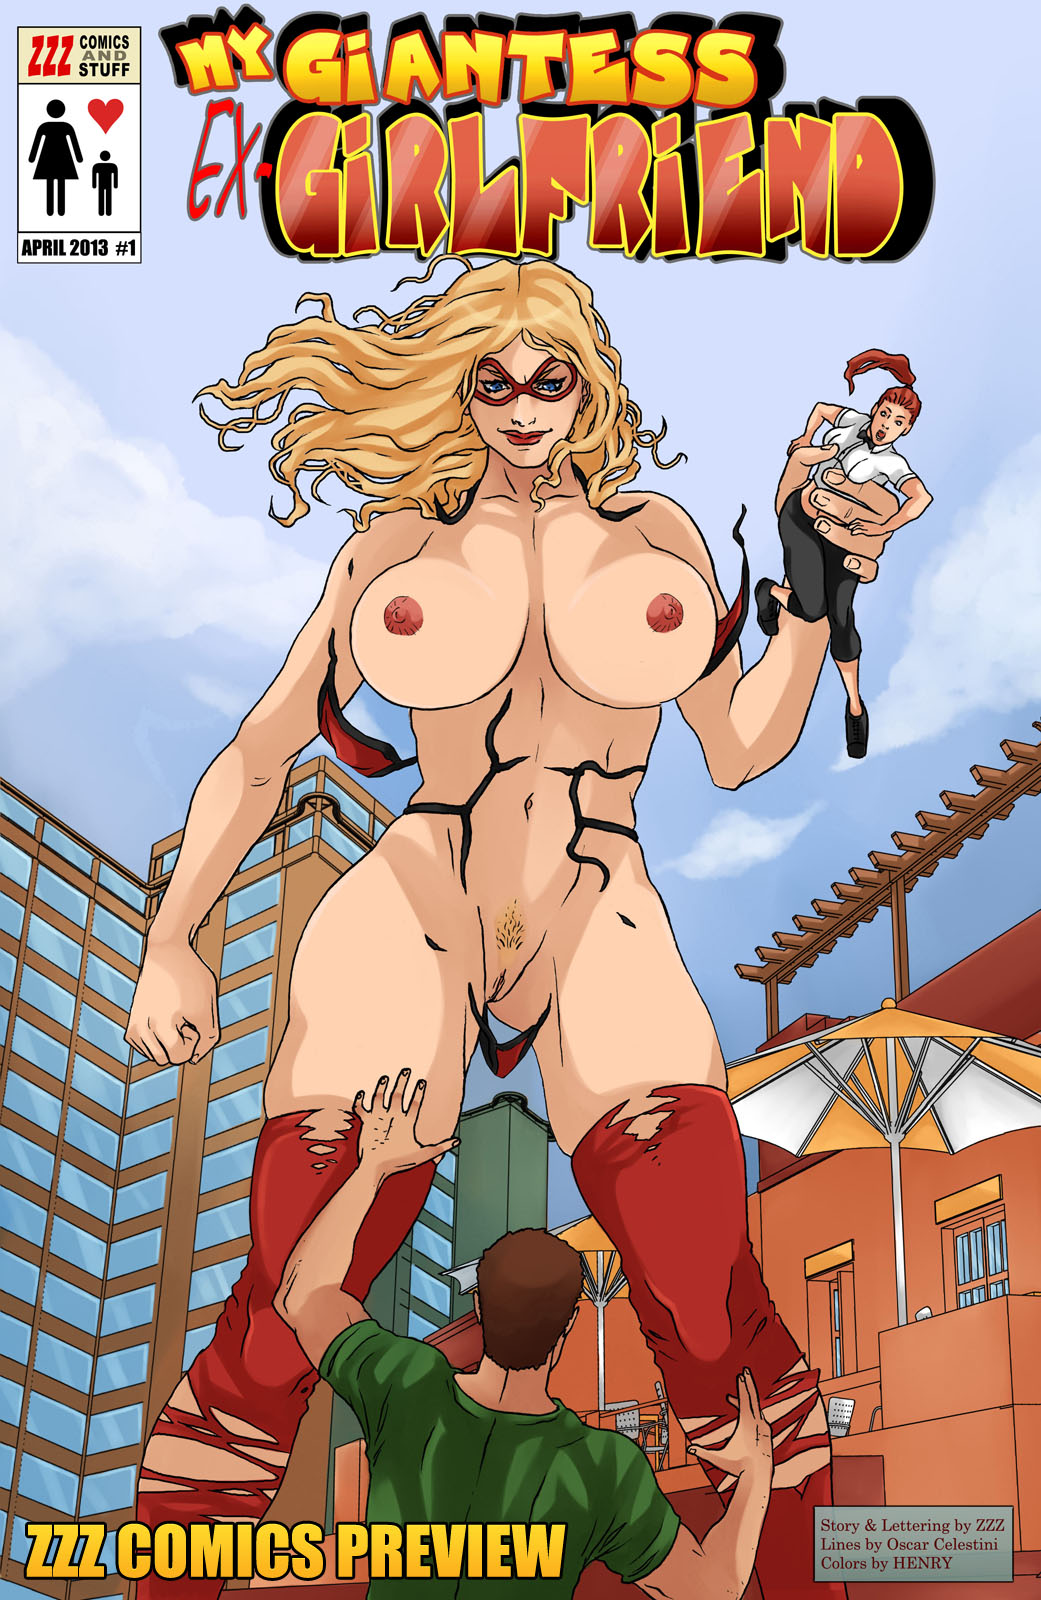 Giantess club porno hentai photos